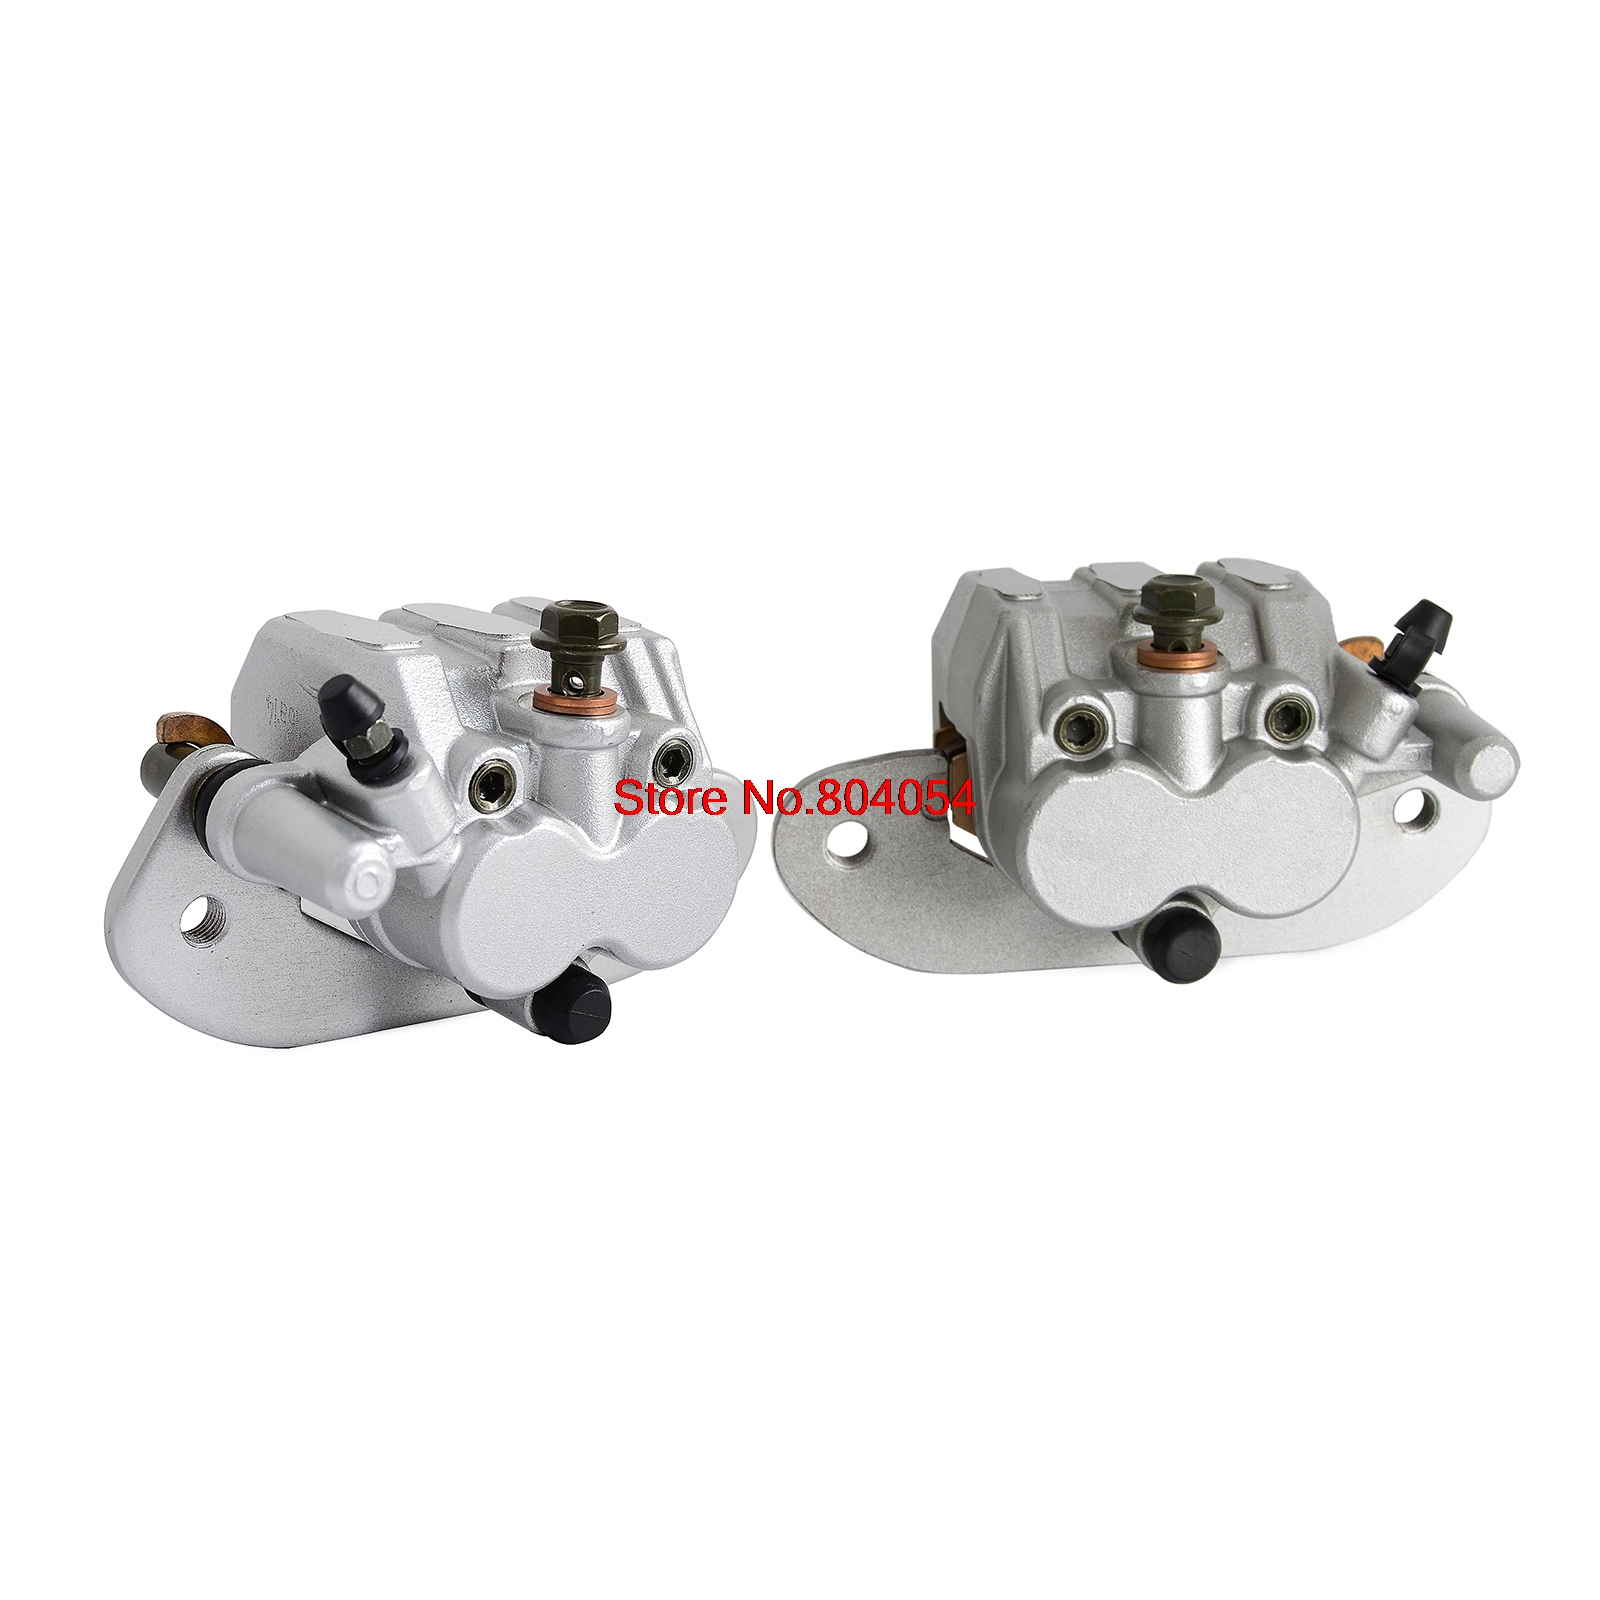 Rear Left & Right Brake Caliper Set With Pads For Yamaha UTV Rhino 700 2008 - 2013 2009 2010 2011 2012 NEW new front brake caliper with pads fits for yamaha utv rhino 660 2004 2005 2006 2007